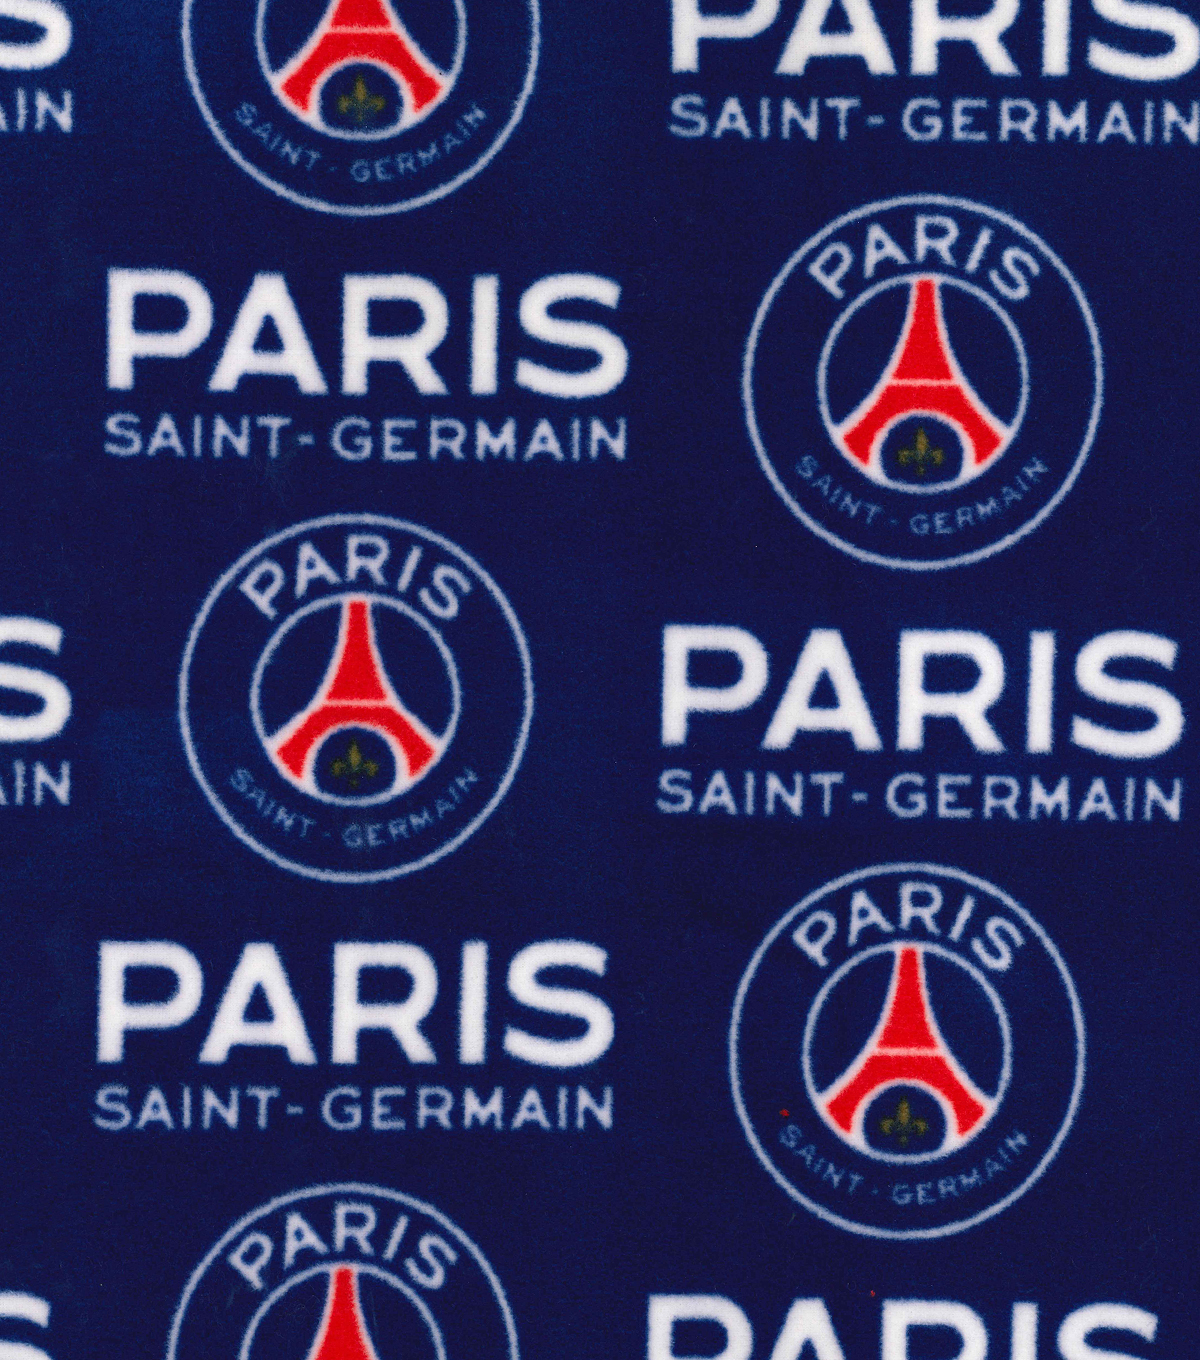 11d171bed4ff3 Paris Saint-Germain Football Club Fleece Fabric